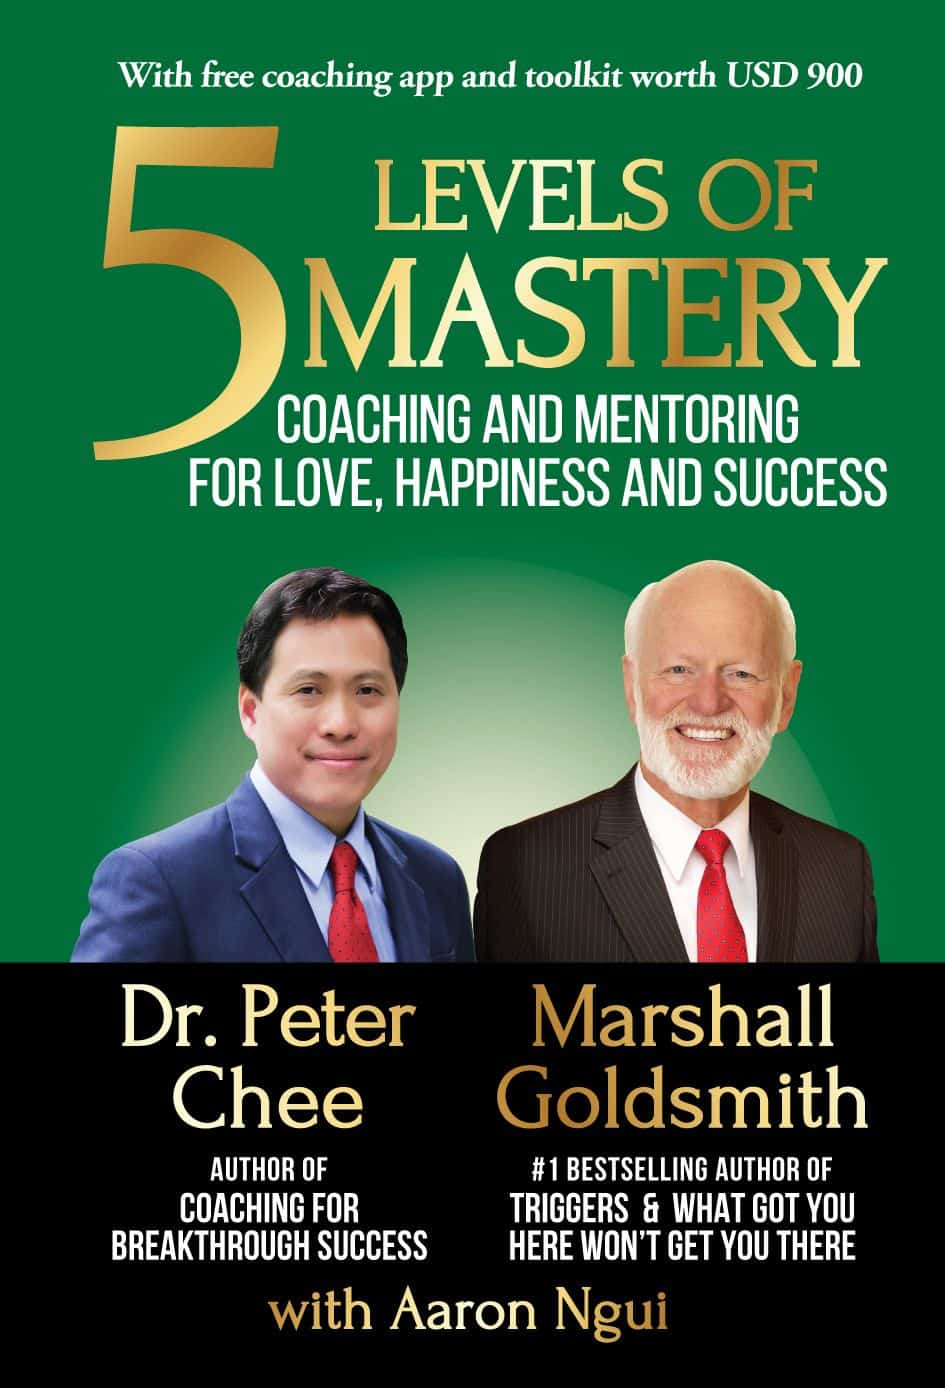 5 Levels of Mastery